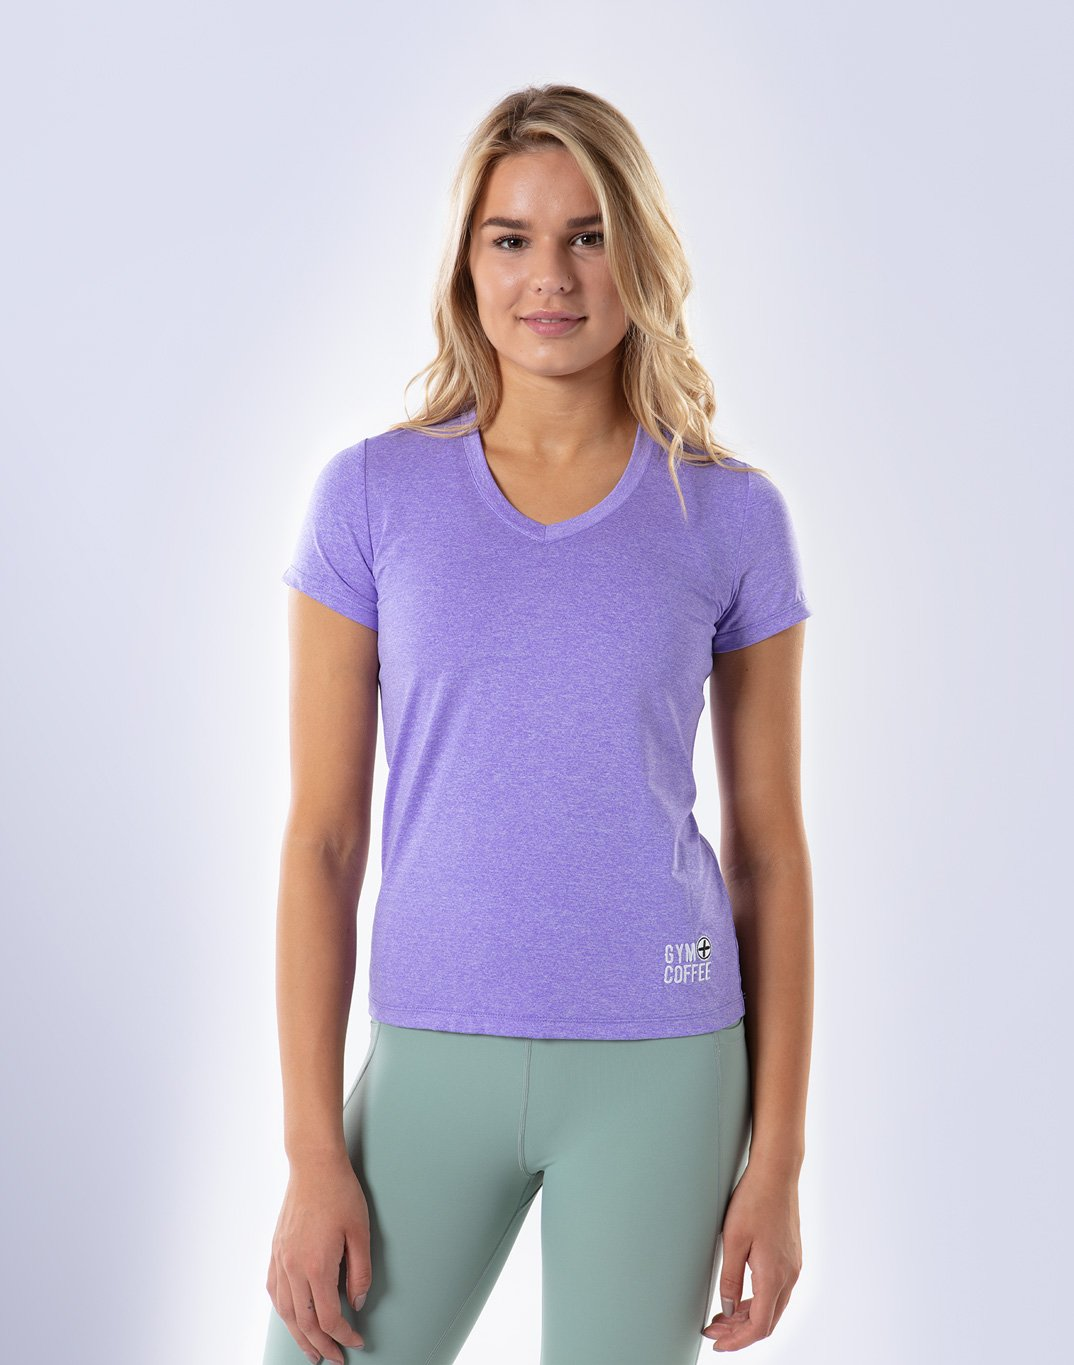 Gym Plus Coffee T-Shirt Raglan V-Tech Tee in Lilac Designed in Ireland